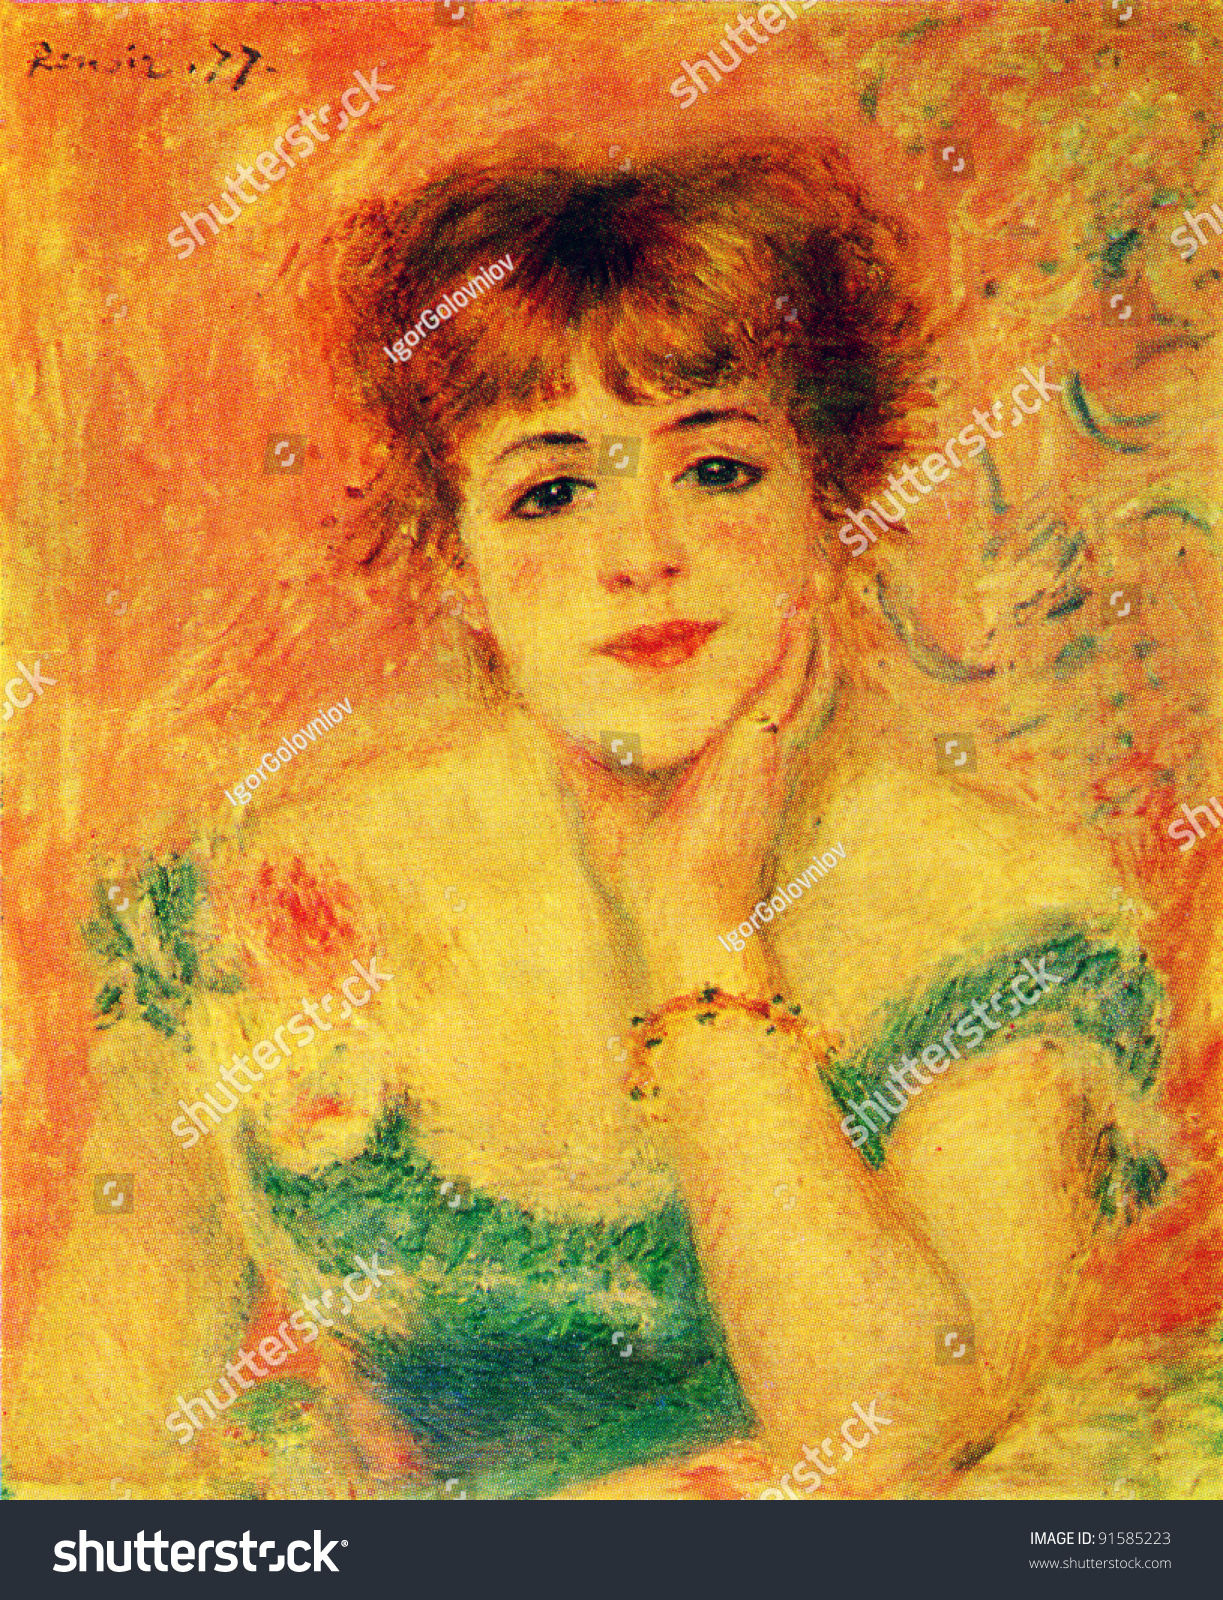 an analysis of the portrait of A portrait of the painter henri matisse (1869-1954), executed at collioure in the summer of 1905 at the same period as the portrait of derain by matisse acquired in 1954 (n06241) during this visit derain also painted a small picture of matisse seated barefooted at a table on the beach, which is now in the philadelphia museum of art.